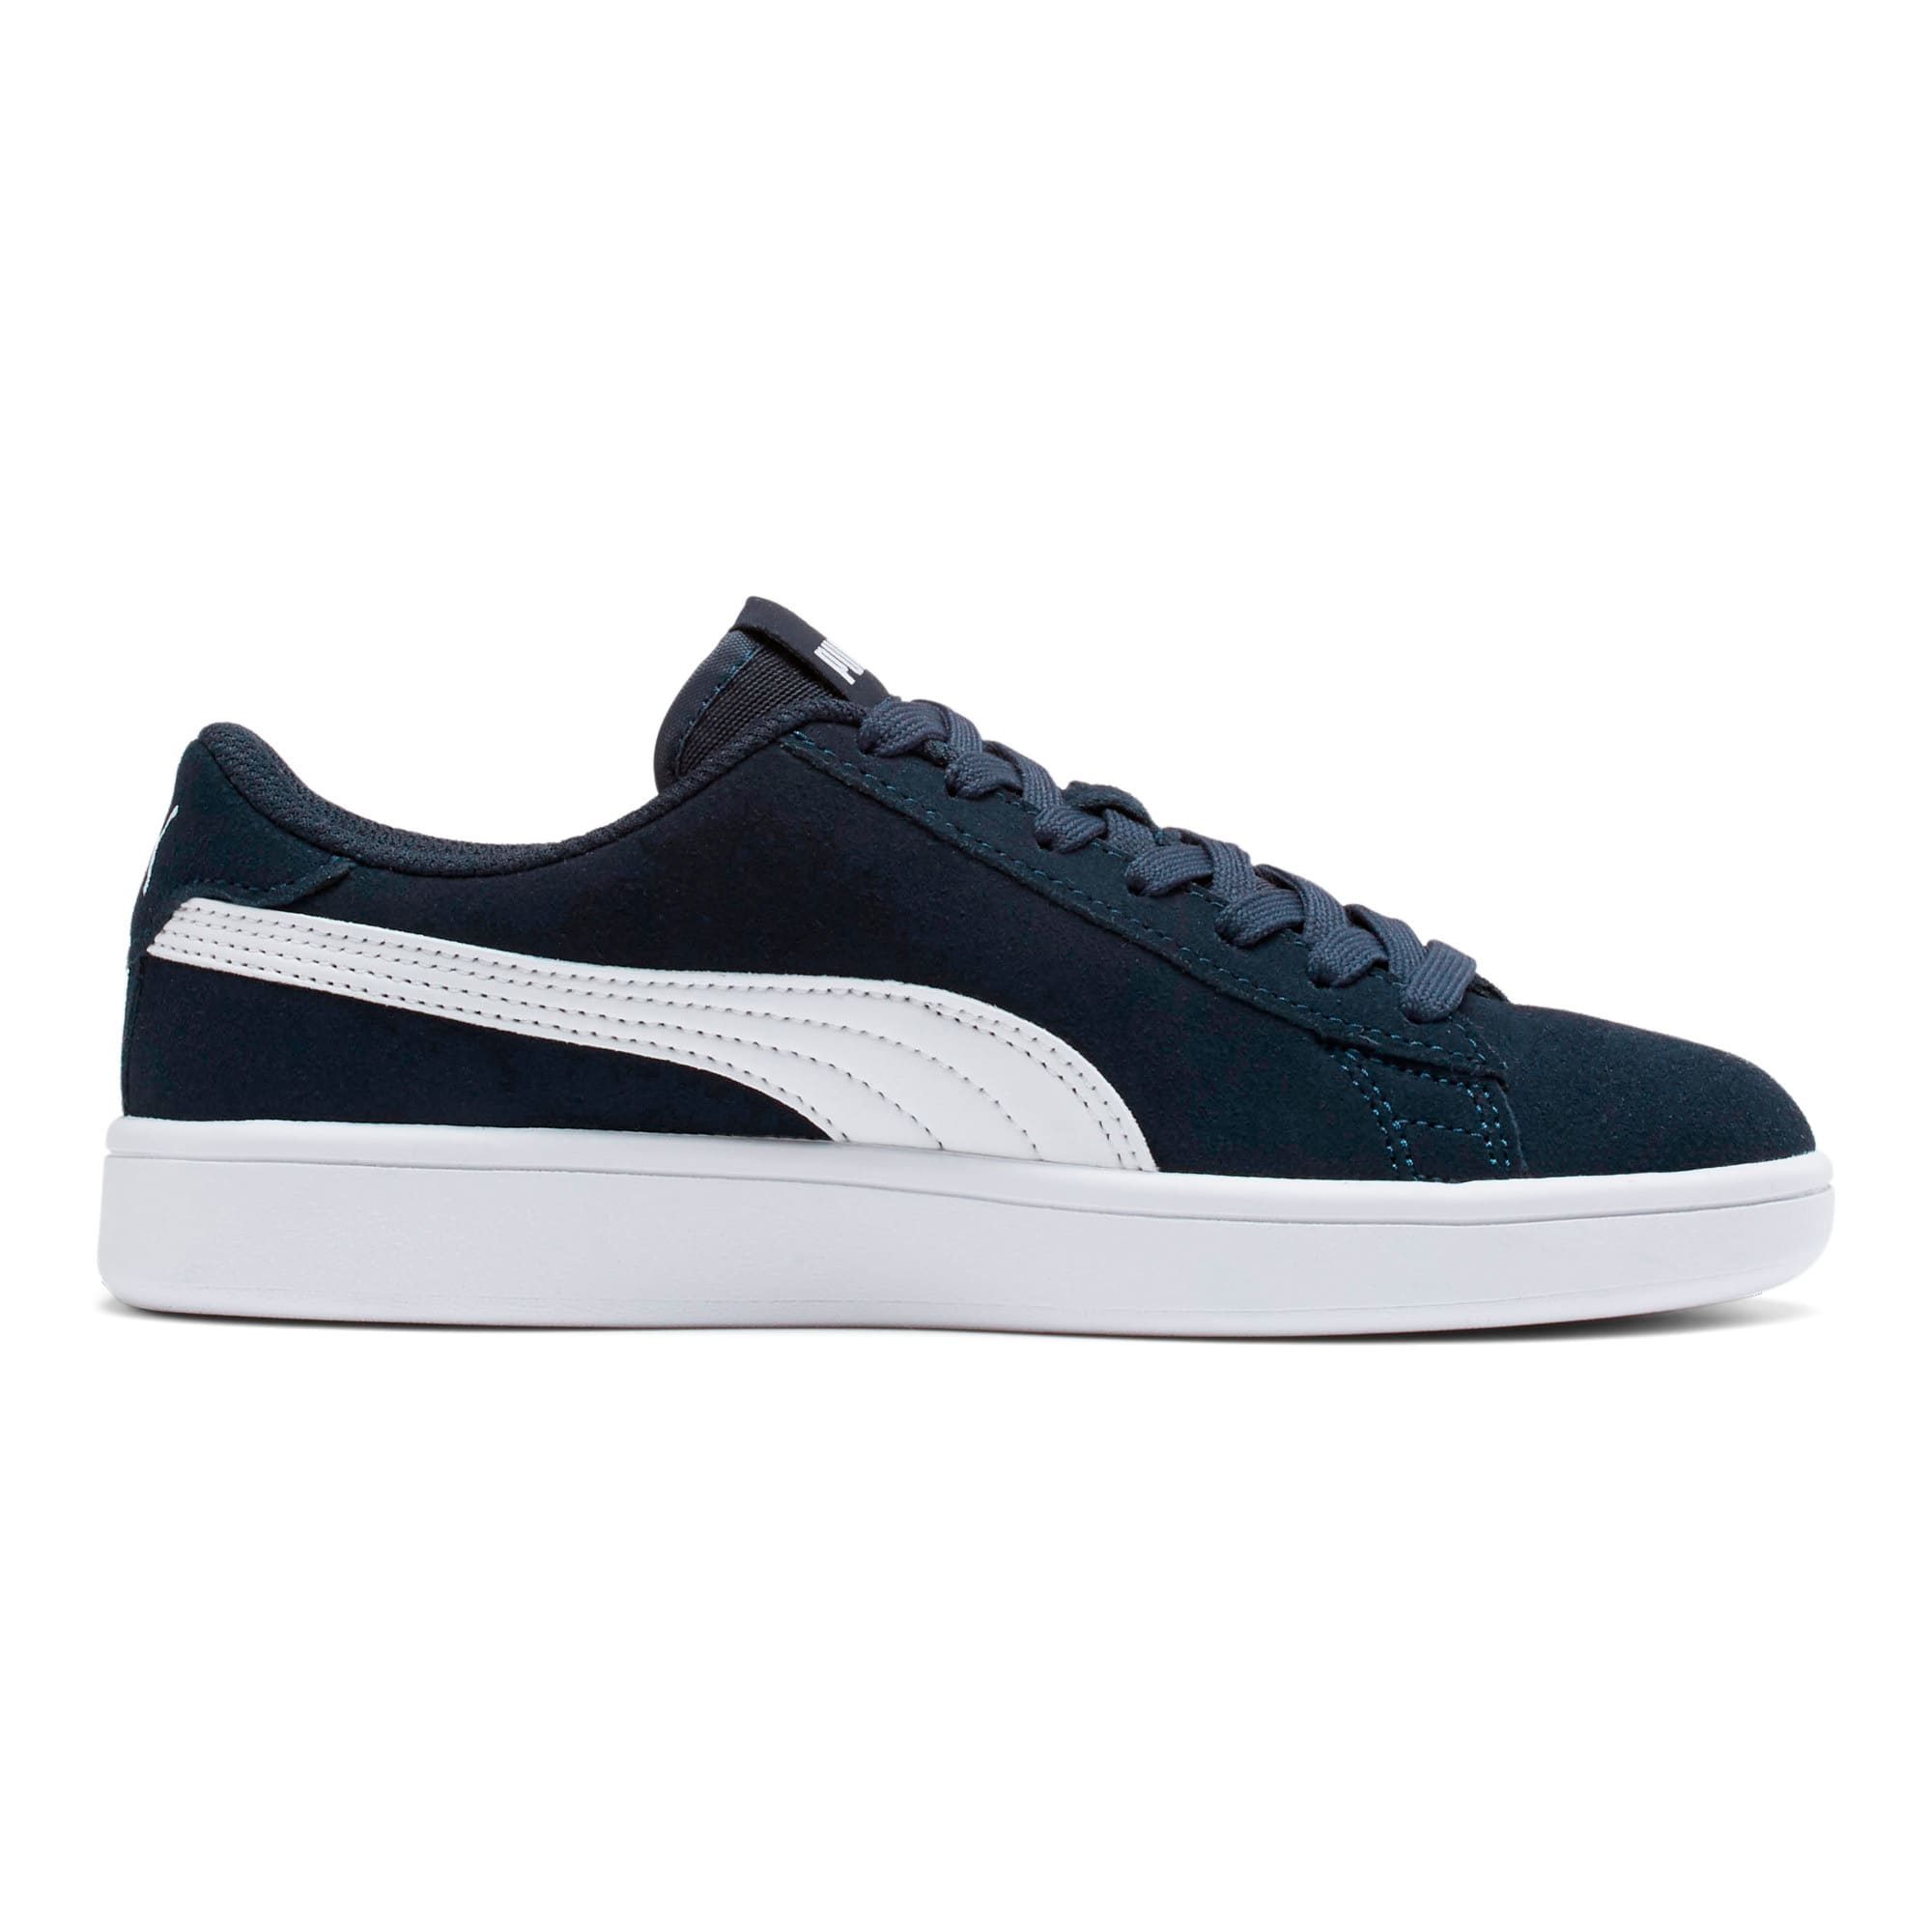 Thumbnail 5 of Smash v2 Suede Sneakers JR, Peacoat-Puma White, medium